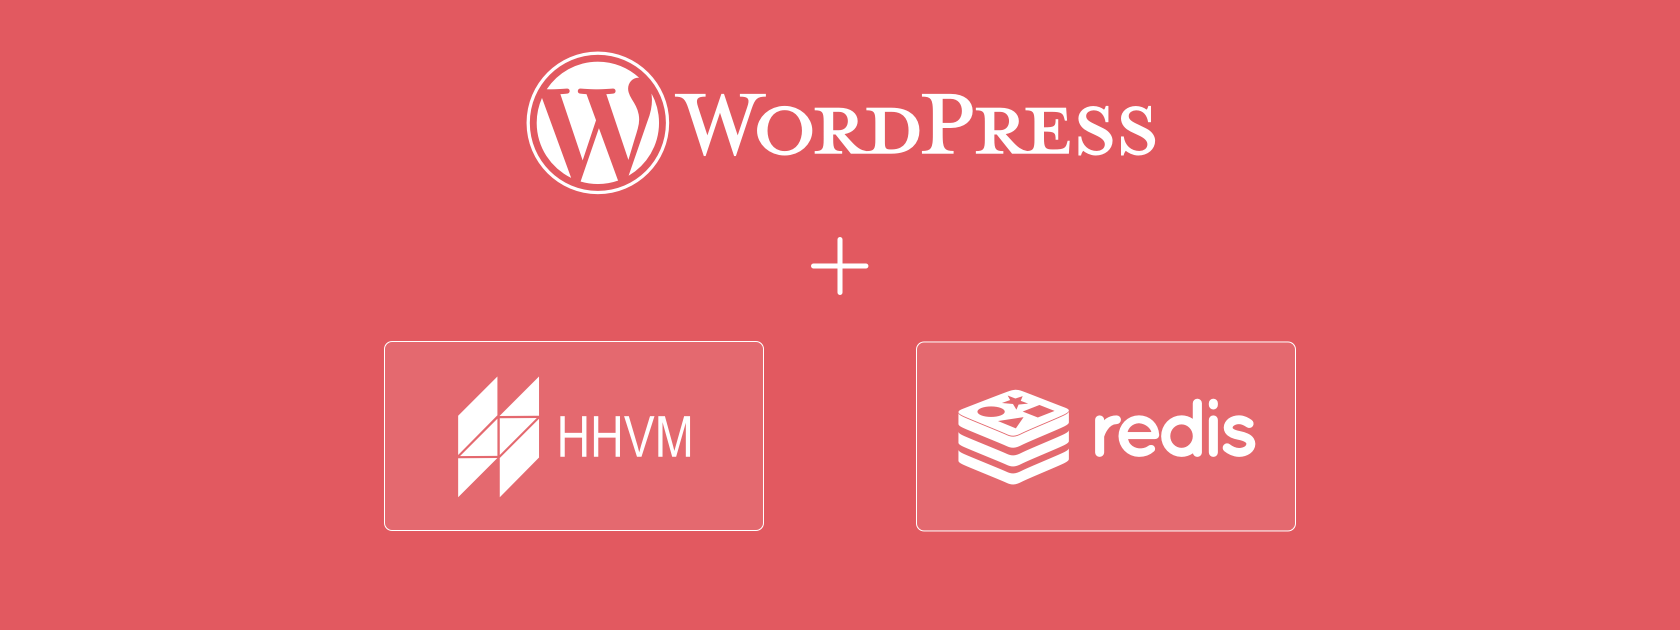 Codeable - Speed up WP admin with Redis and HHVM